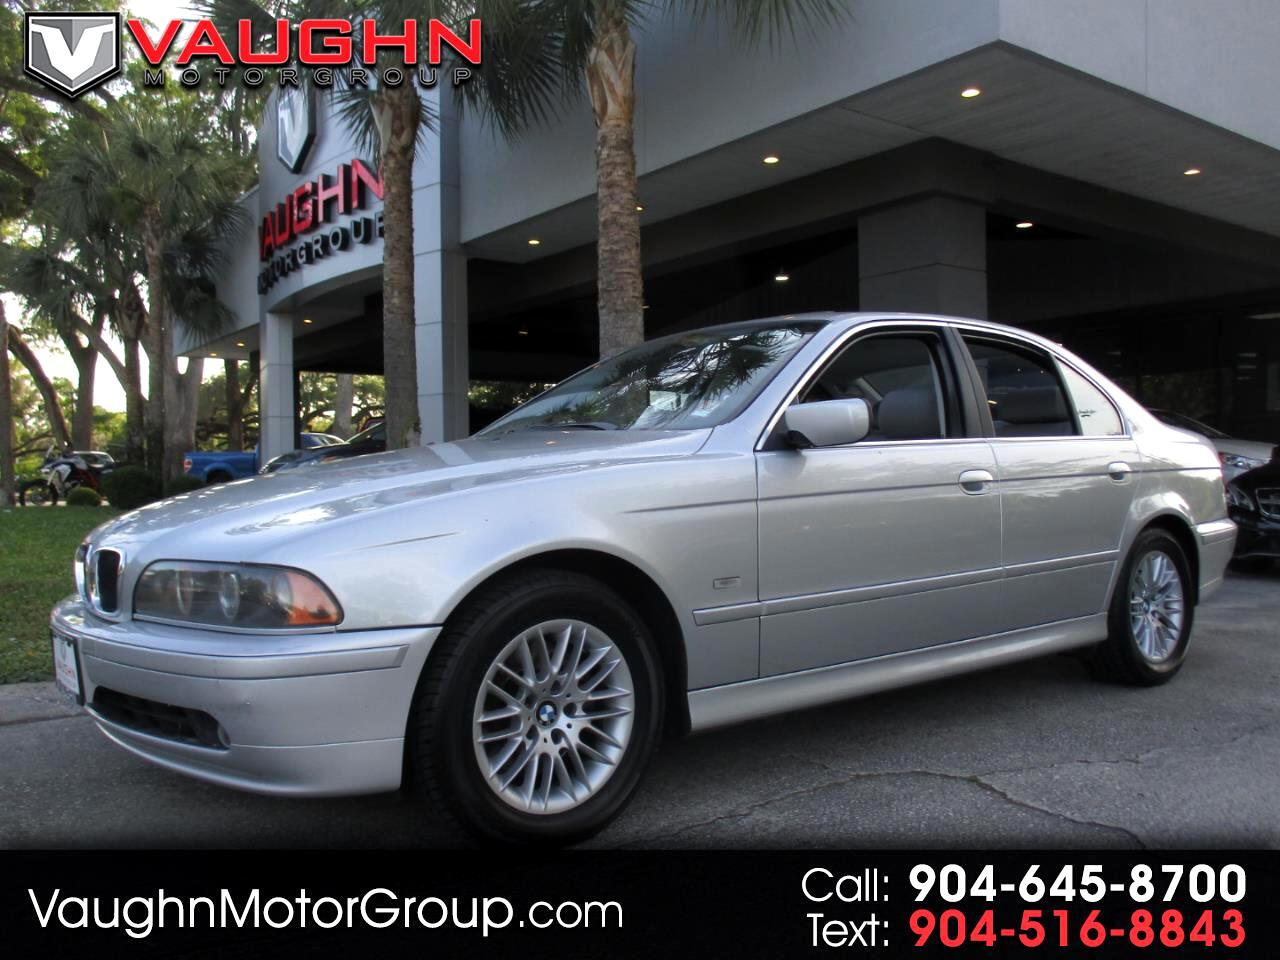 2003 BMW 5 Series 530iA 4dr Sdn 5-Spd Auto